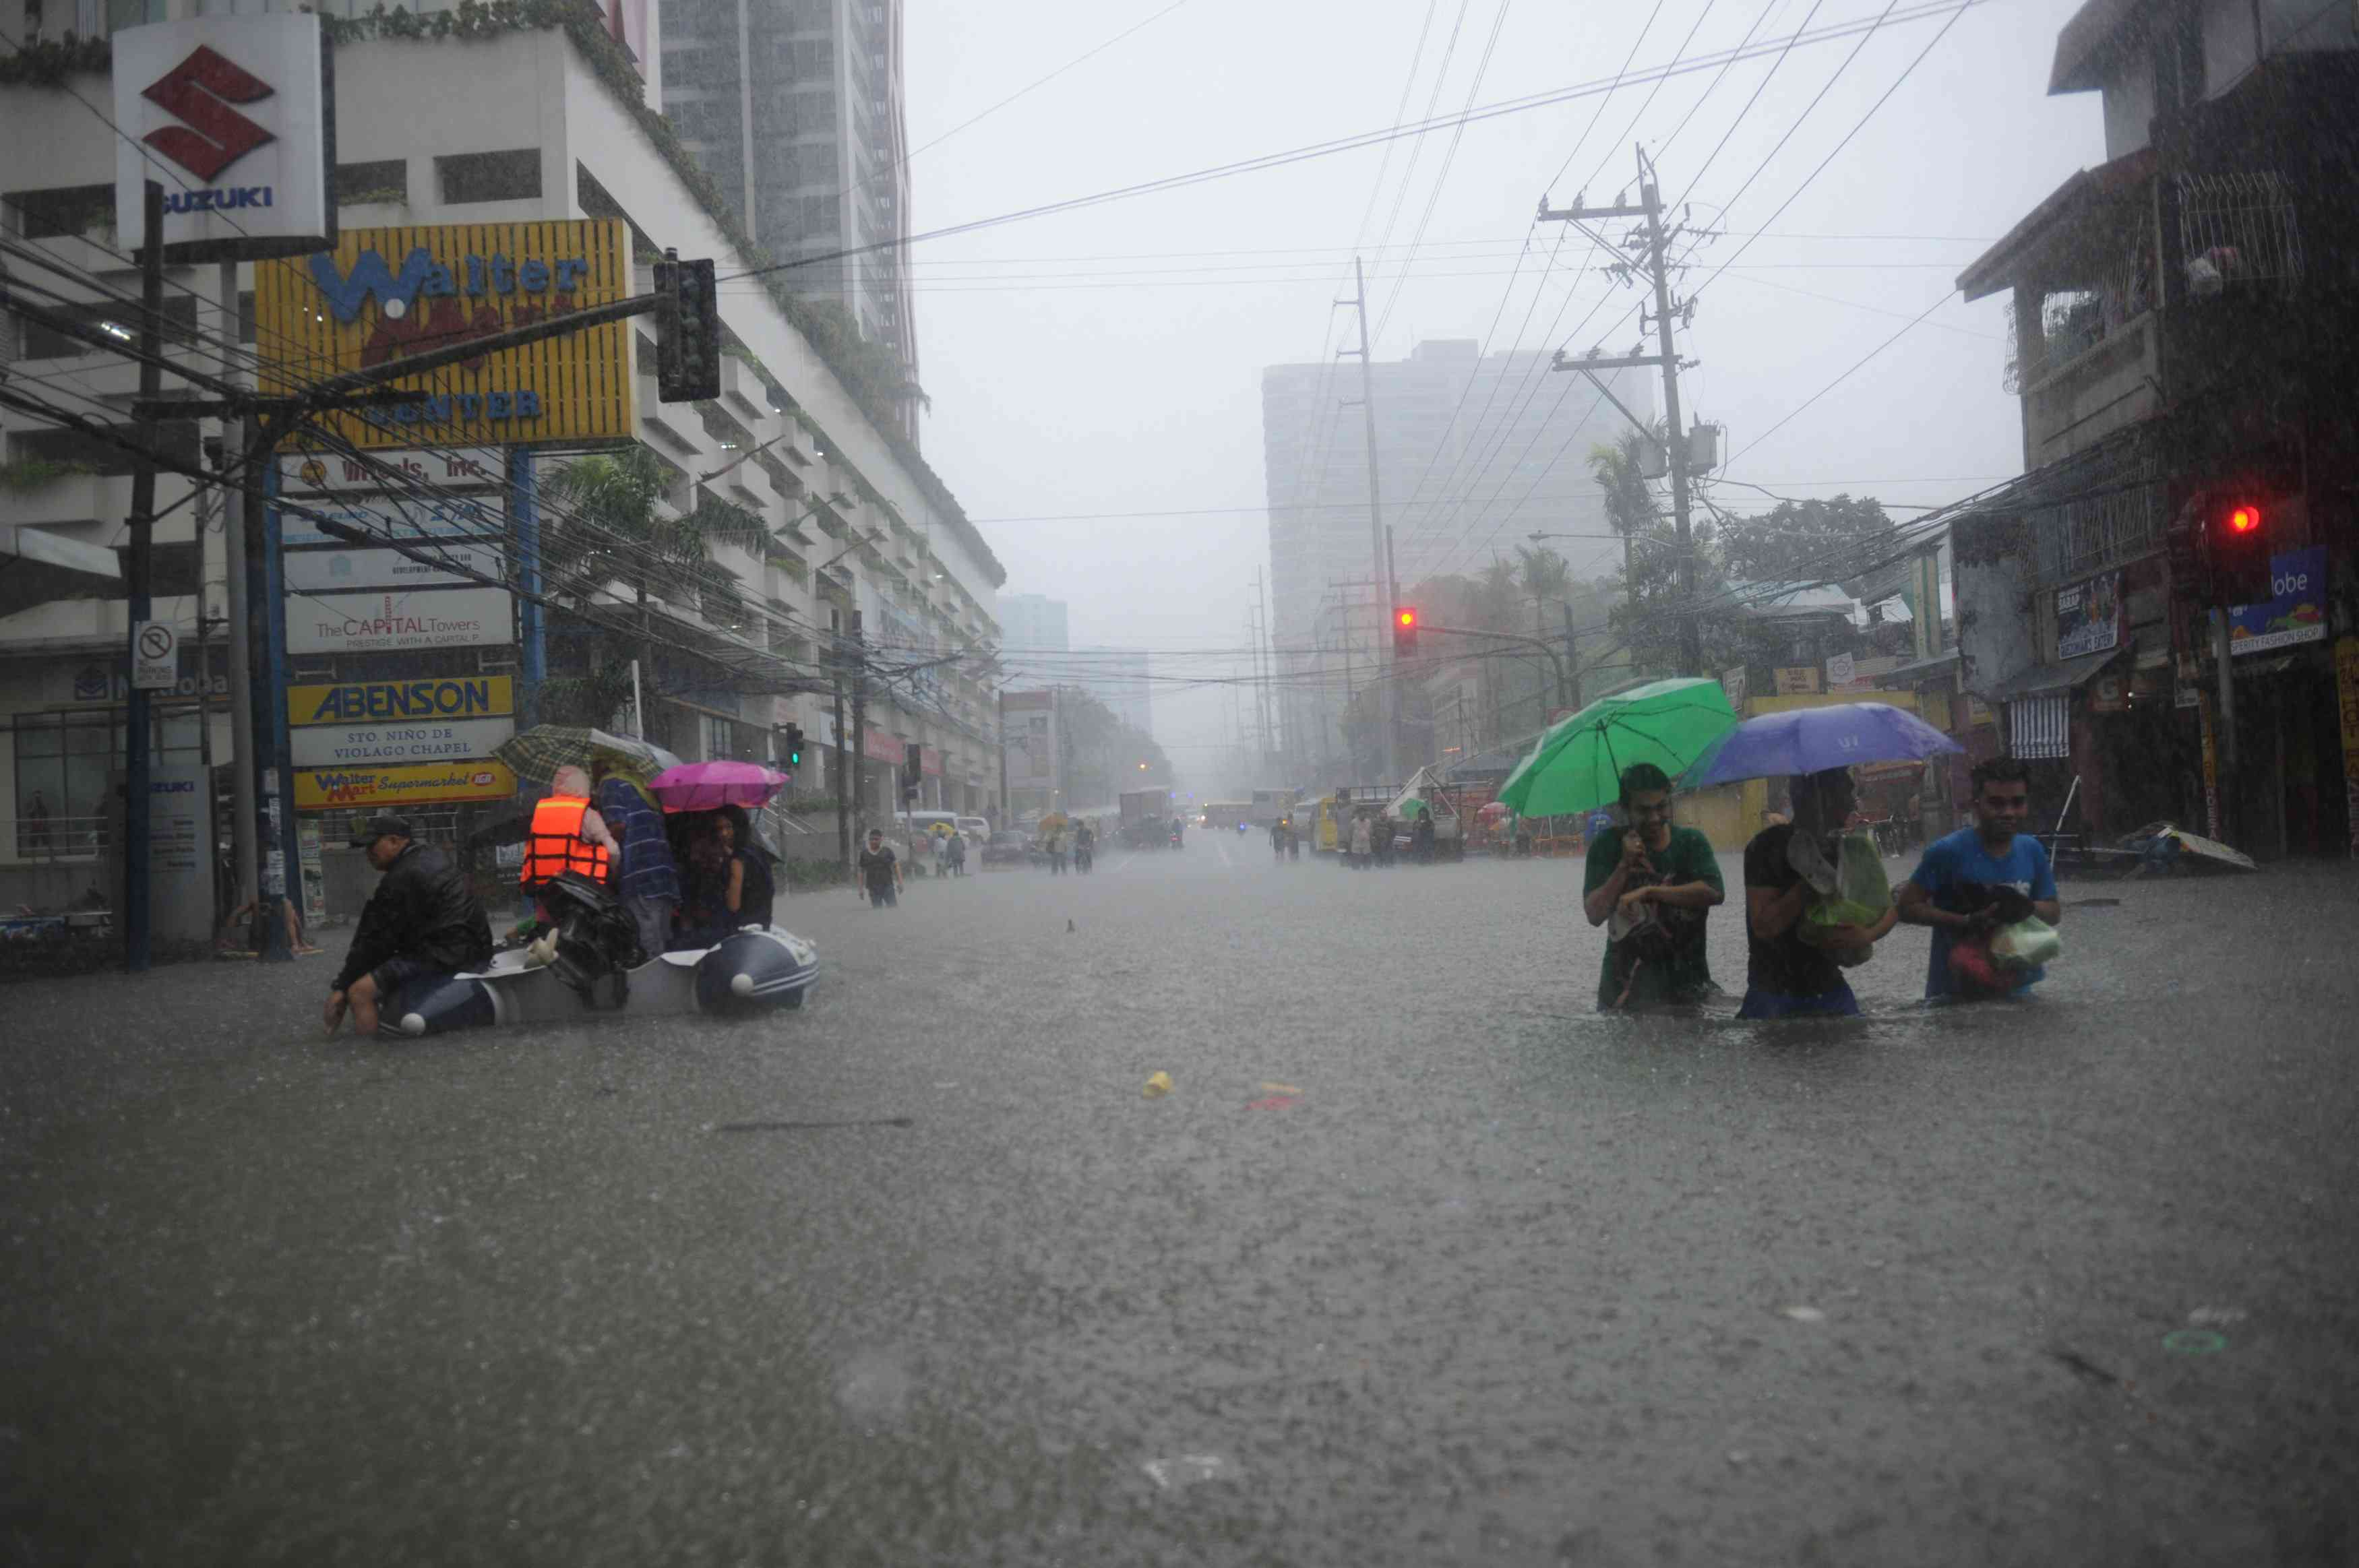 Manila residents attempting to make their way through a flooded street